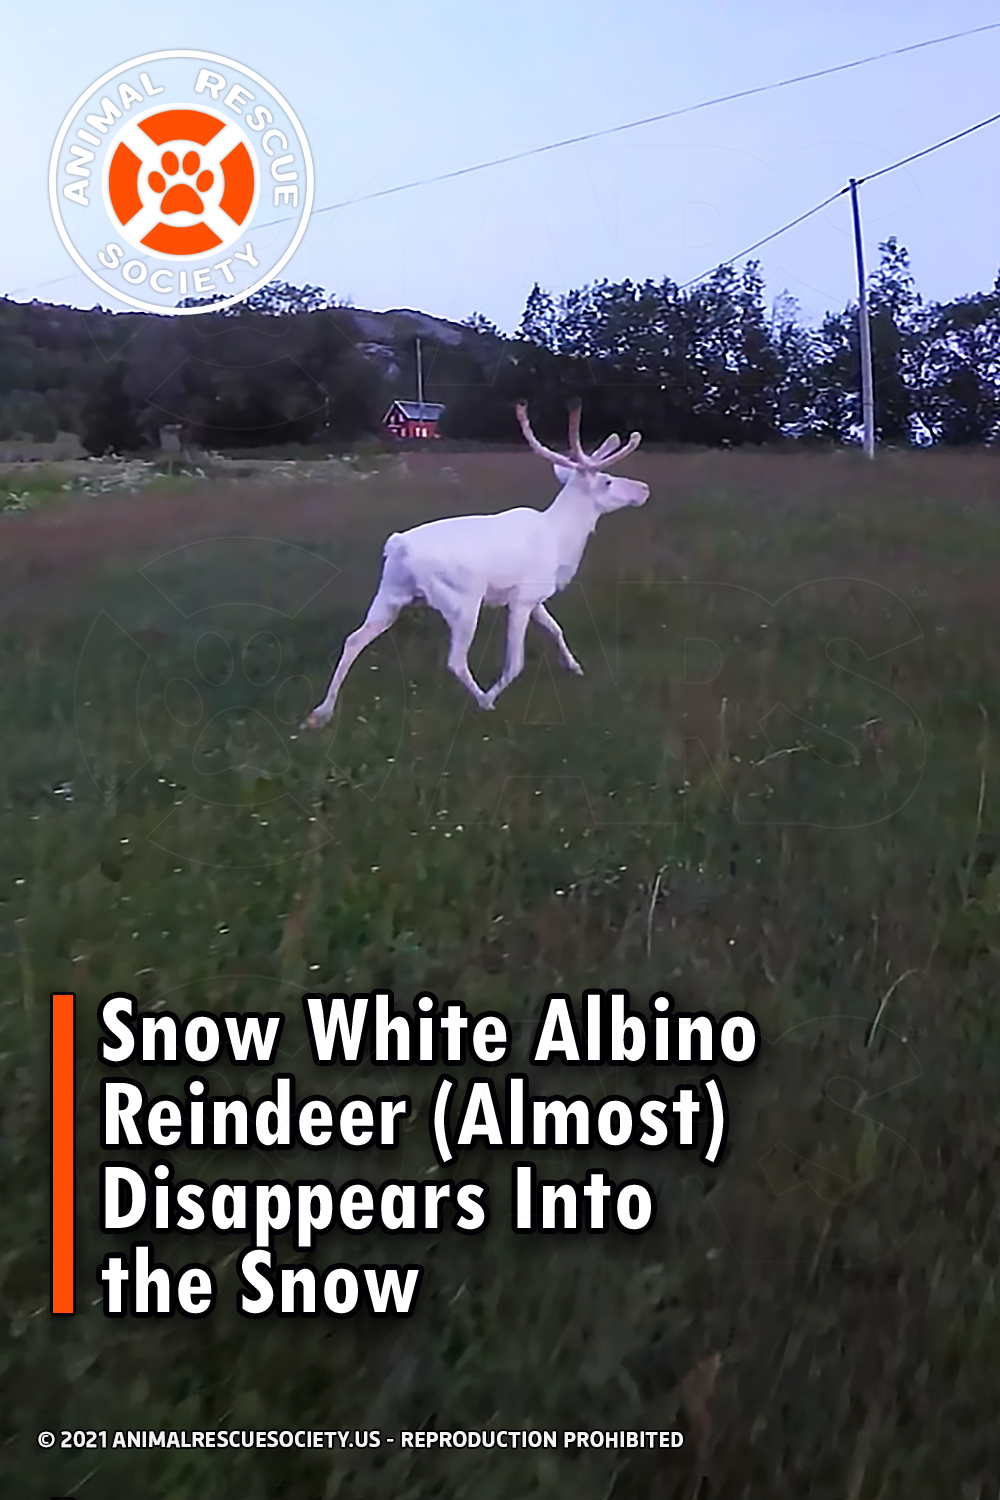 Snow White Albino Reindeer (Almost) Disappears Into the Snow